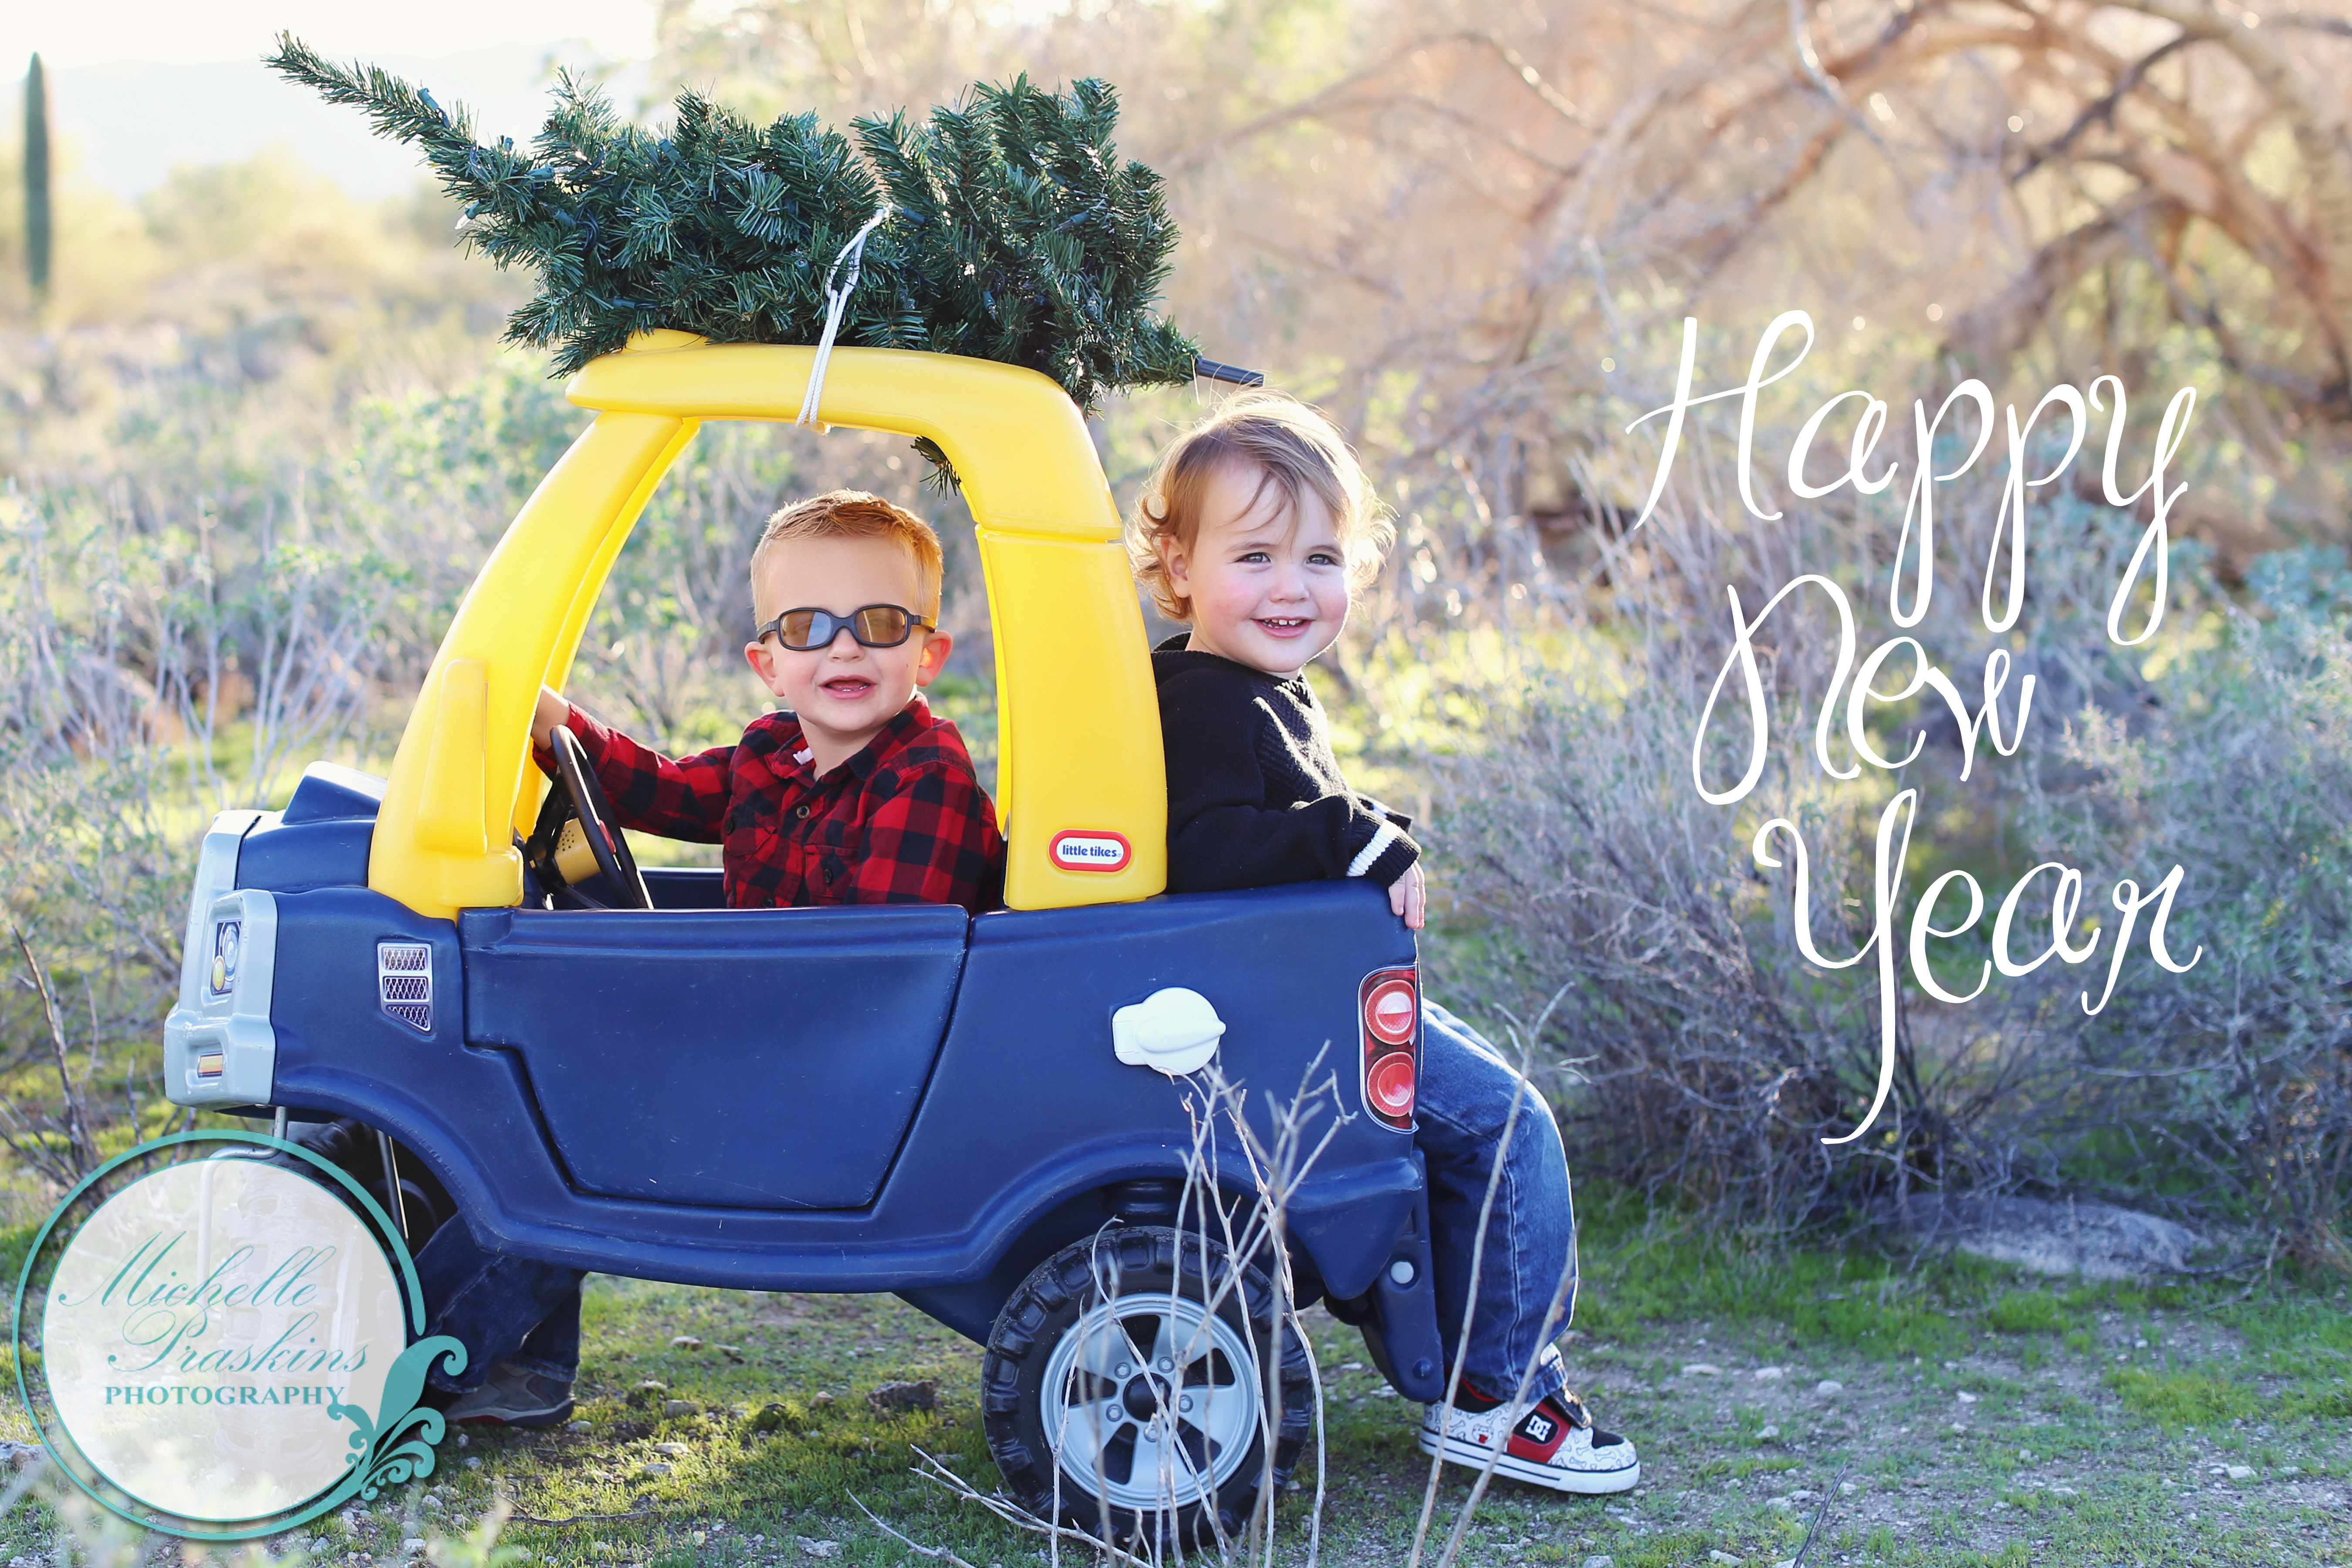 merry christmas and happy new year christmas photo idea with little tikes car and christmas tree michelle praskins photography